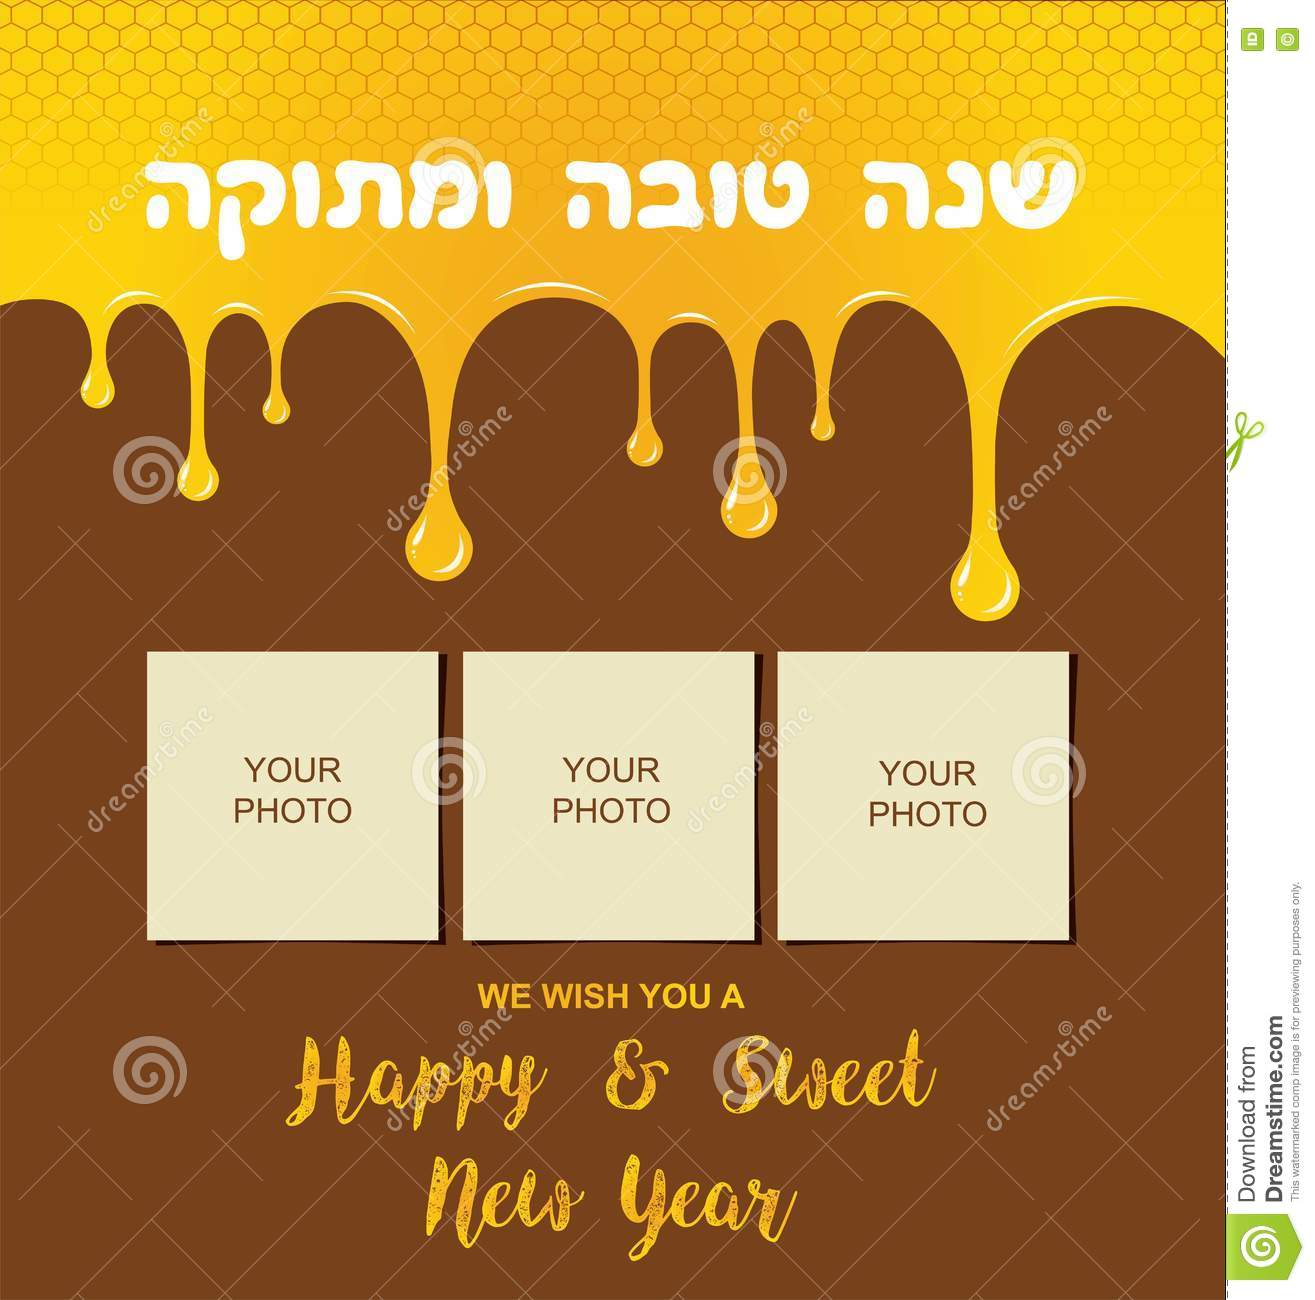 Honey drips shana tova greetings in hebrew rosh hashanah card shana tova greetings in hebrew rosh hashanah card with place for m4hsunfo